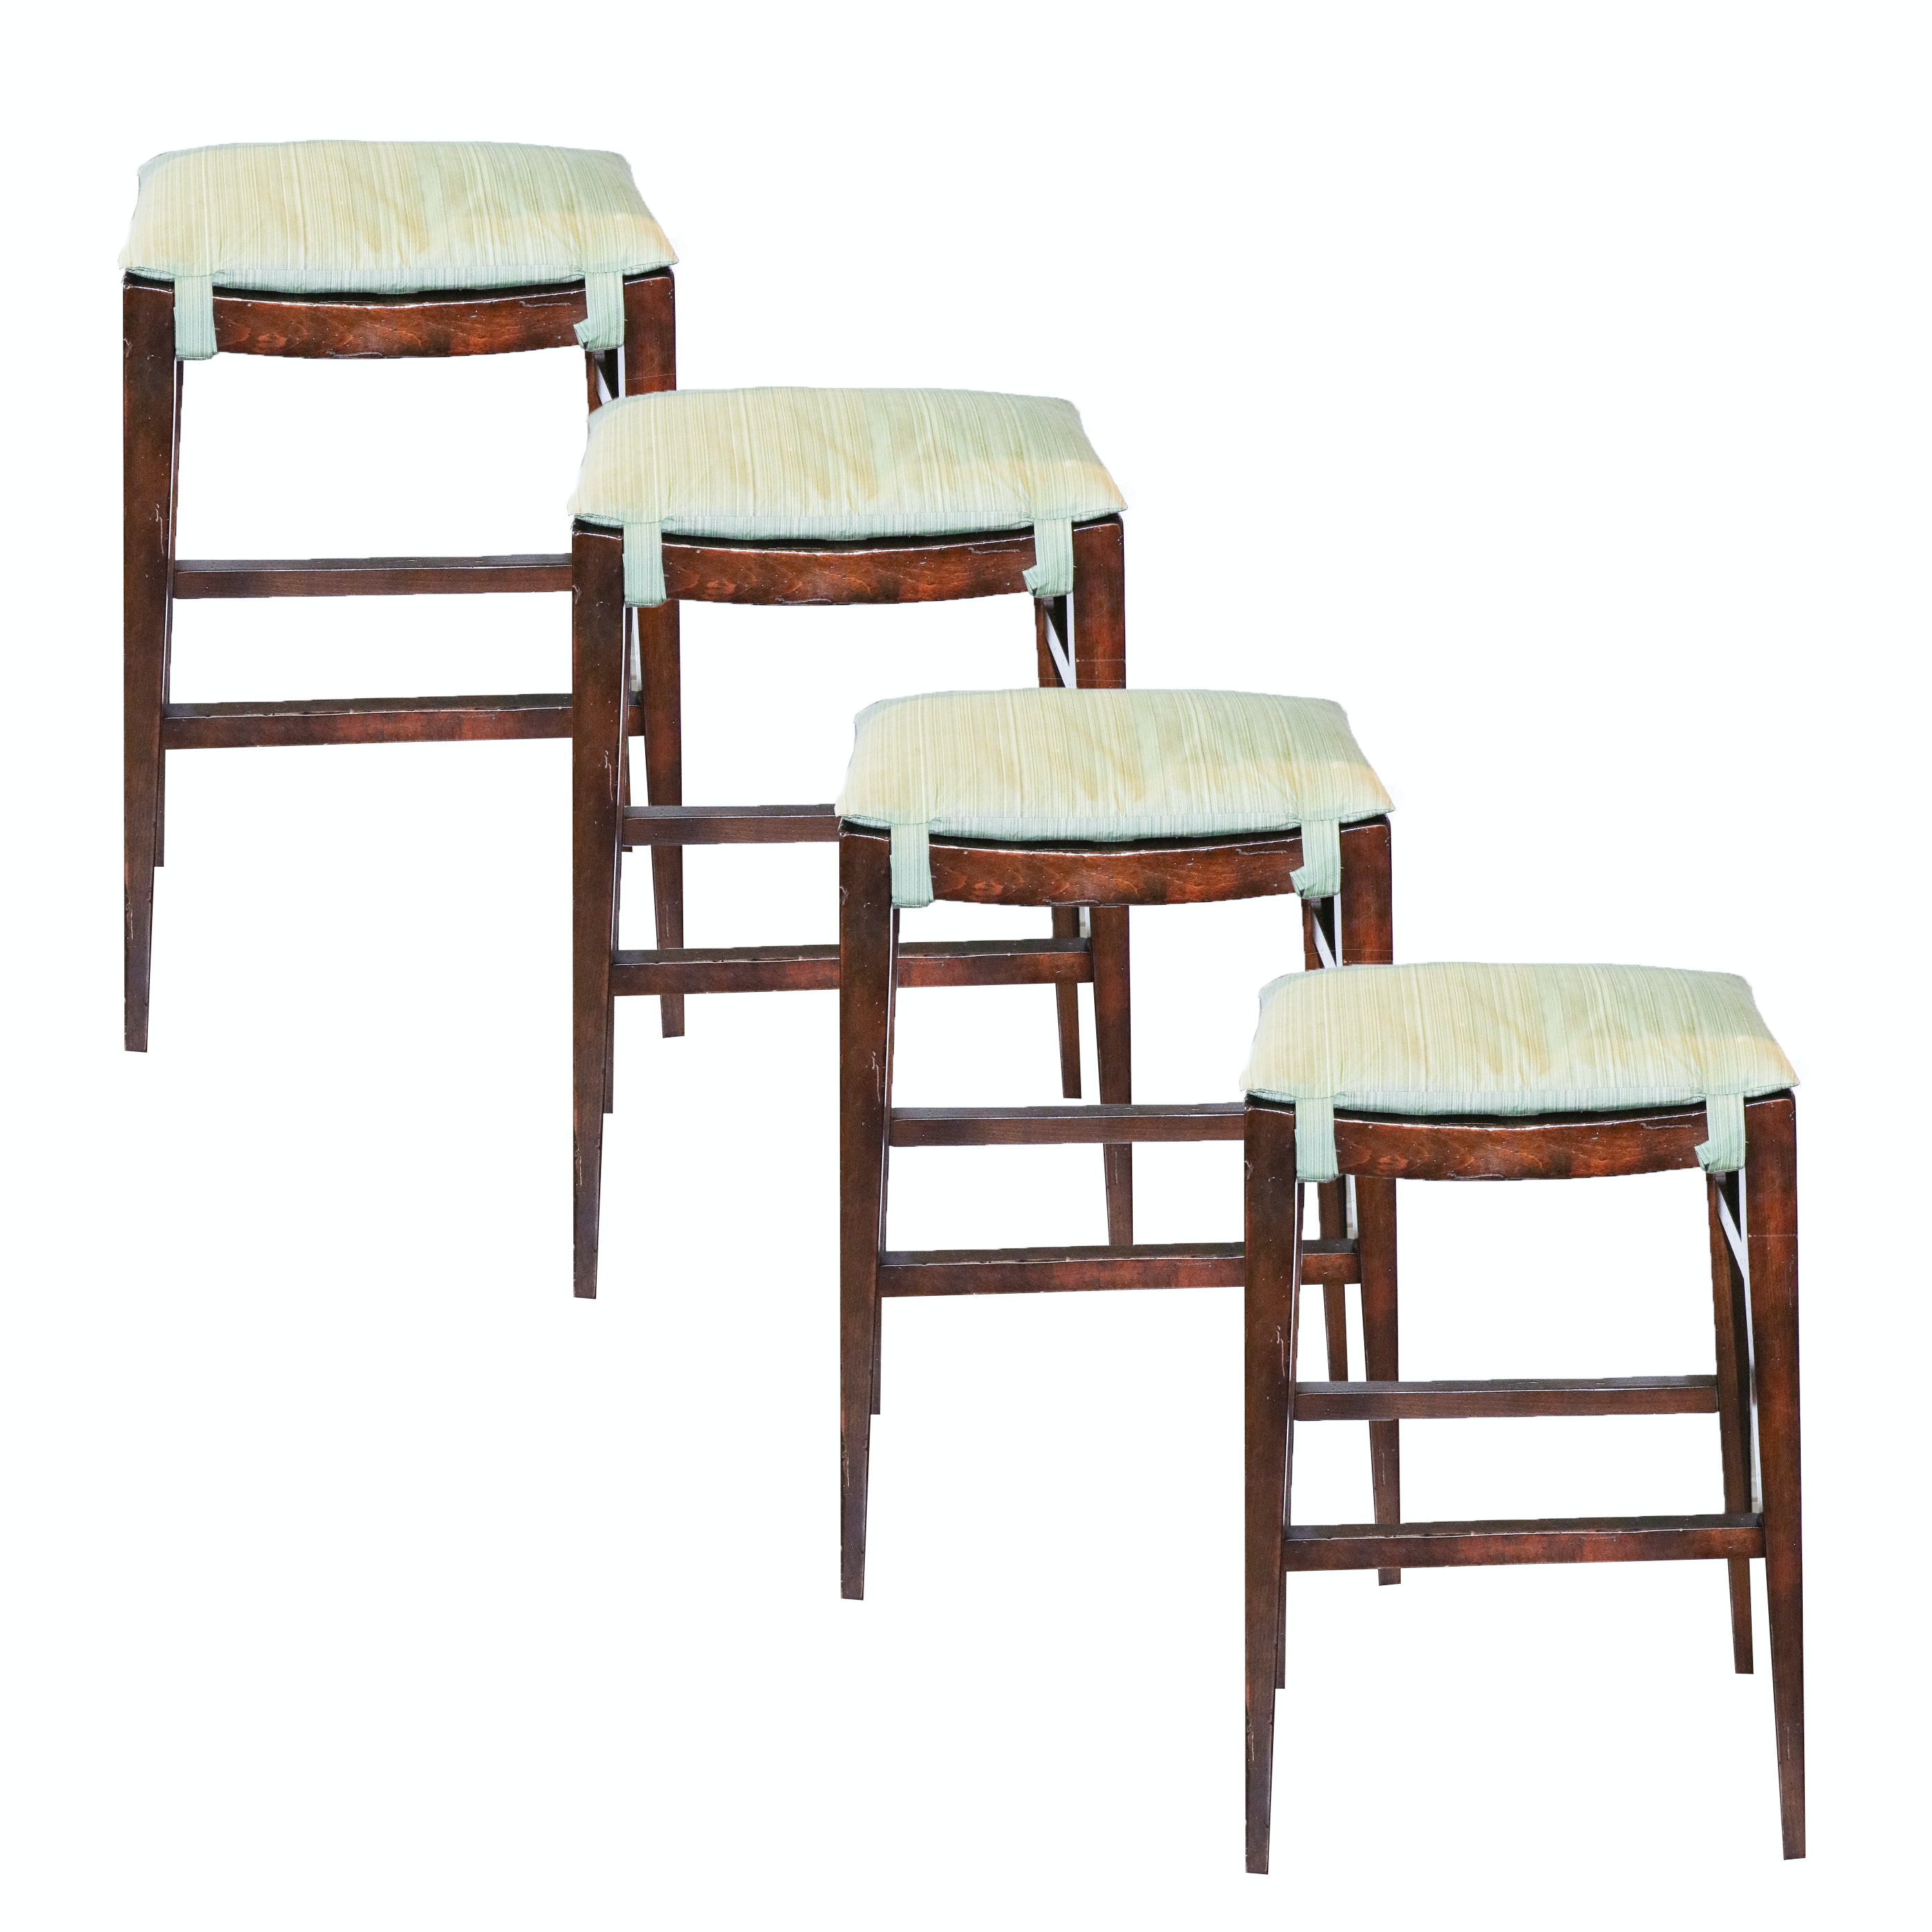 Wooden Bar Stools with Removable Seat Cushions